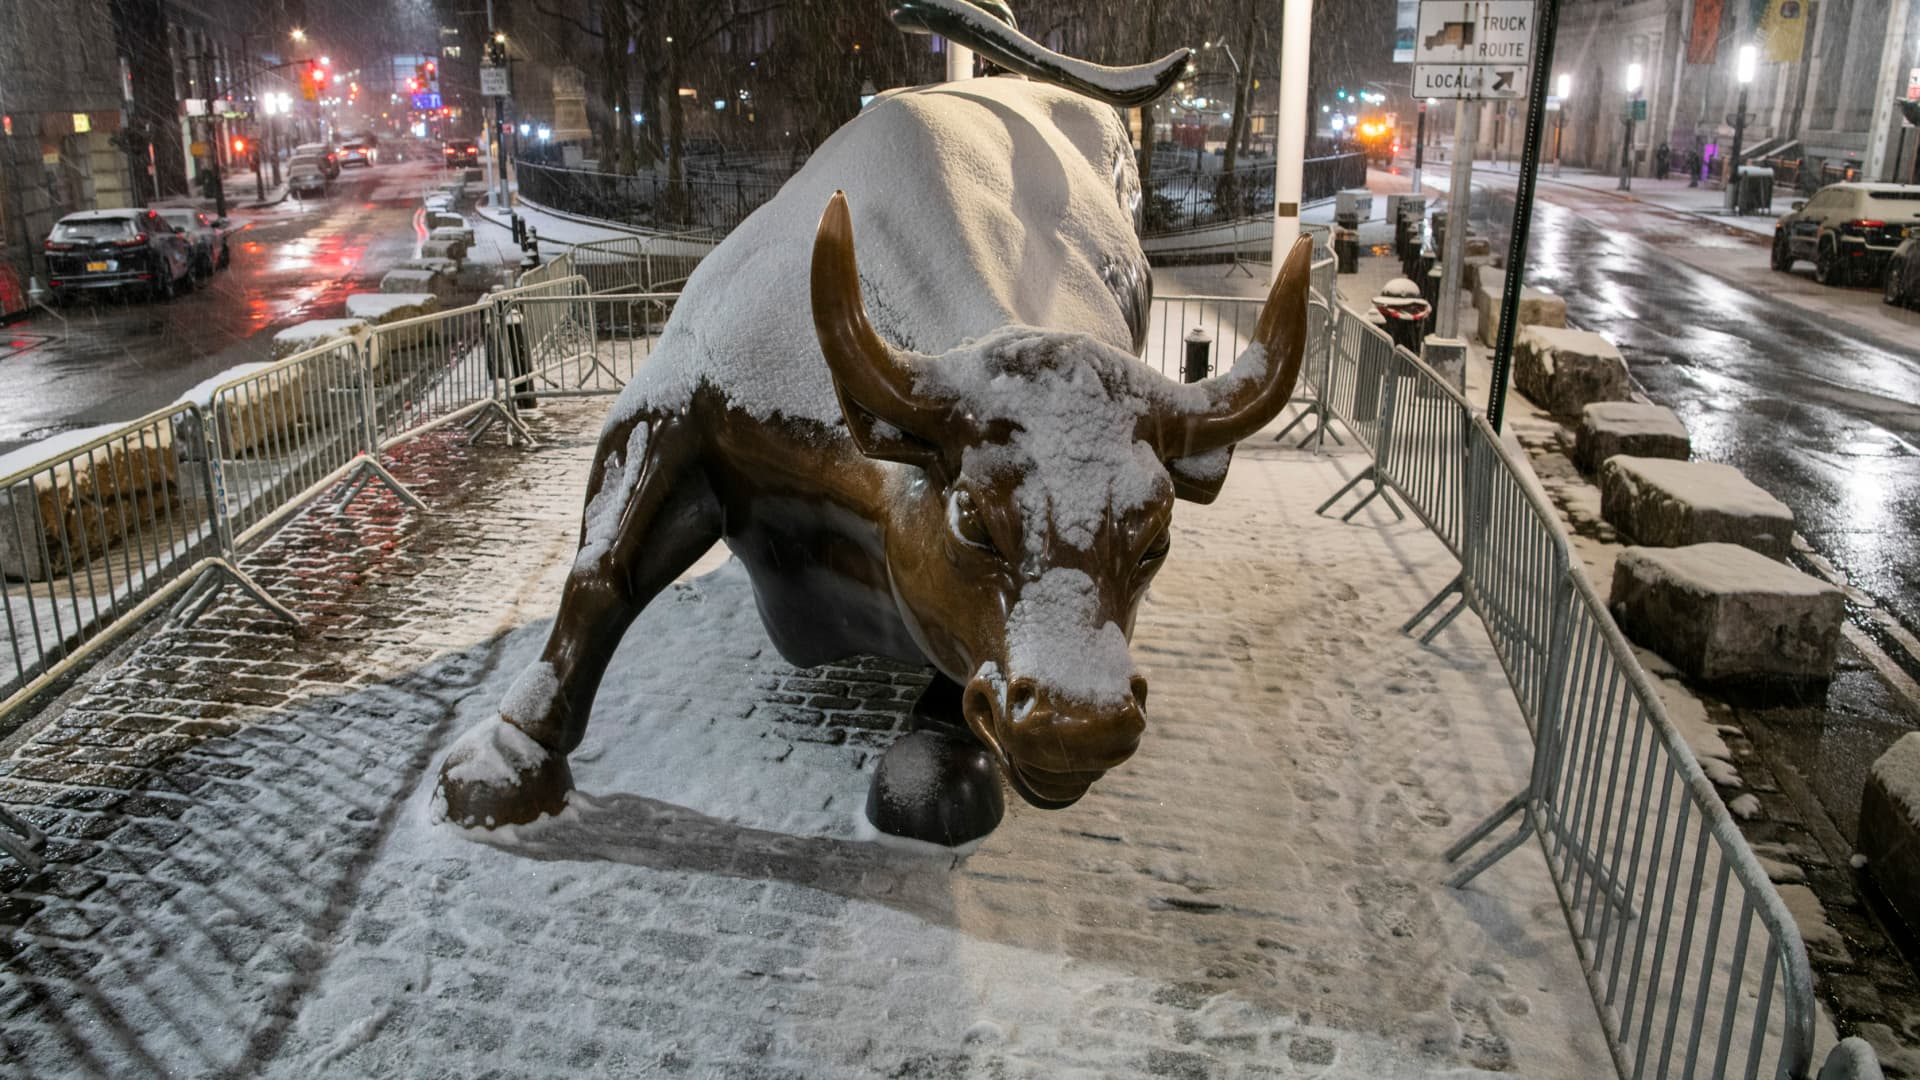 The bull of Wall Street is seen during the pass of the snowstorm on January 31, 2021 in New York City.